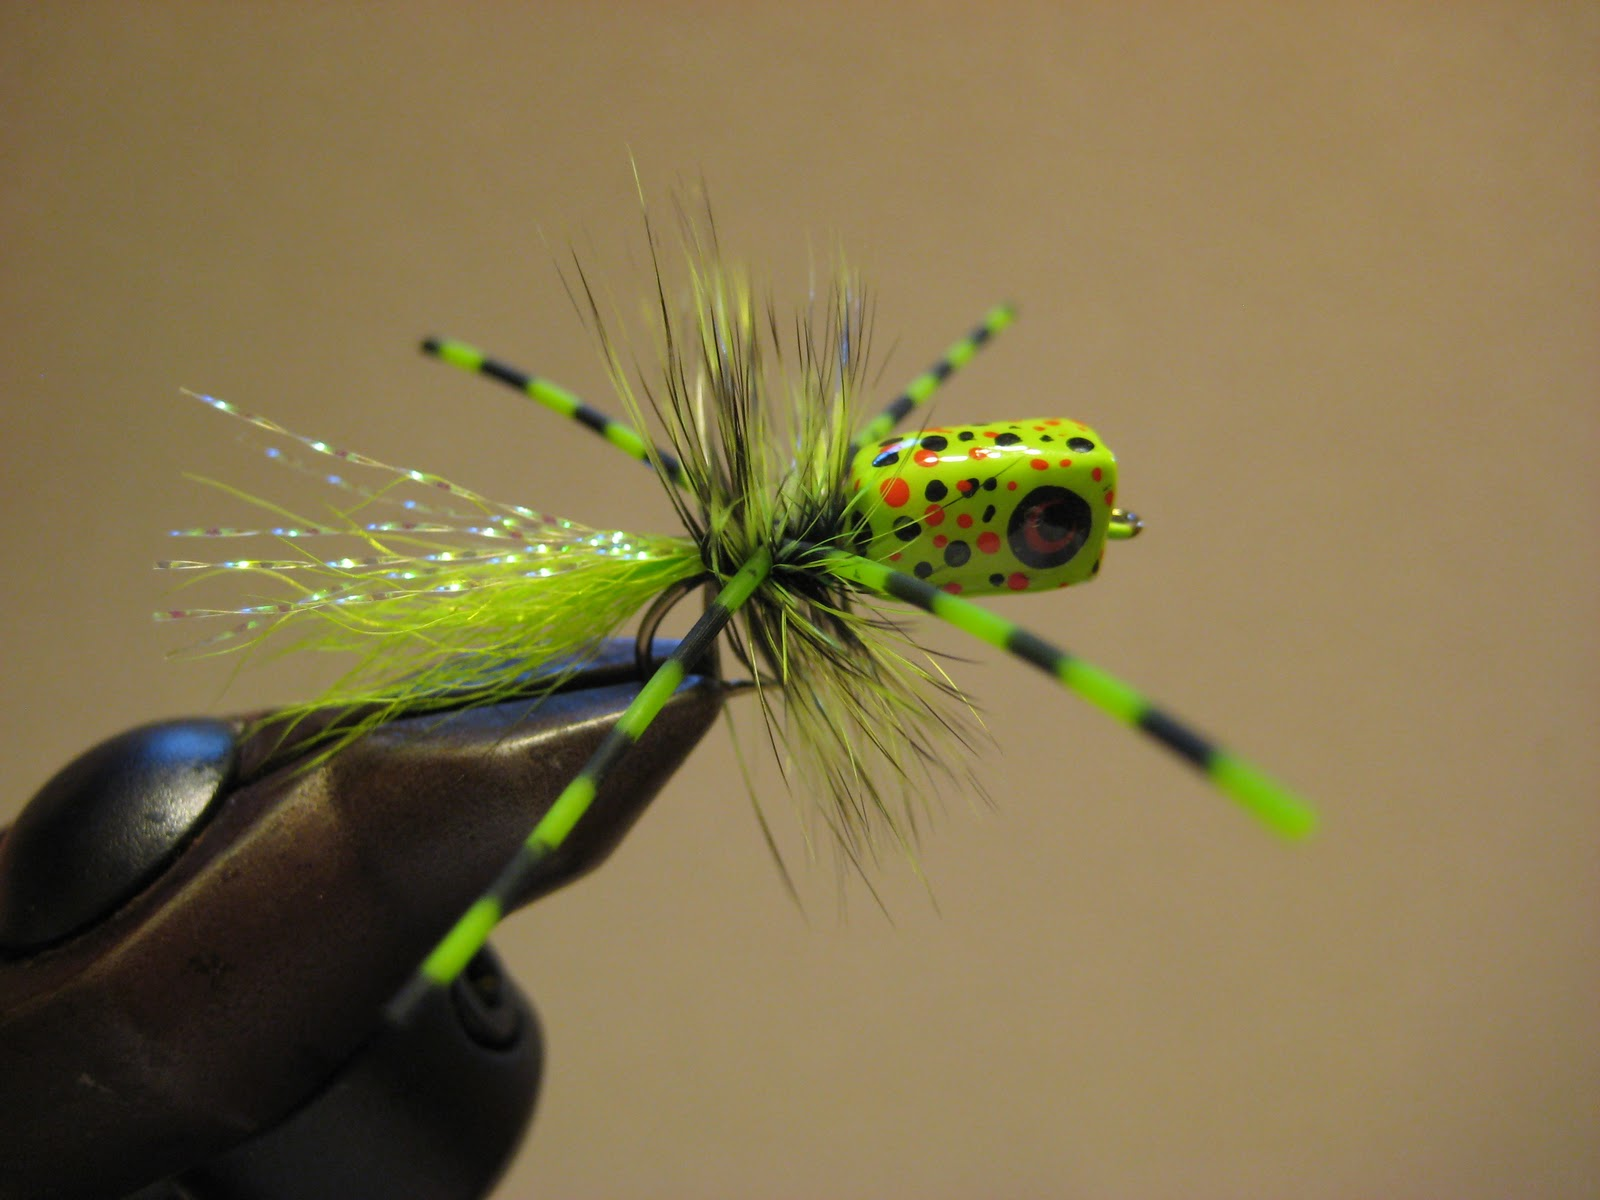 Fly fishing tying obsessed more balsa wood poppers for Fly fishing poppers